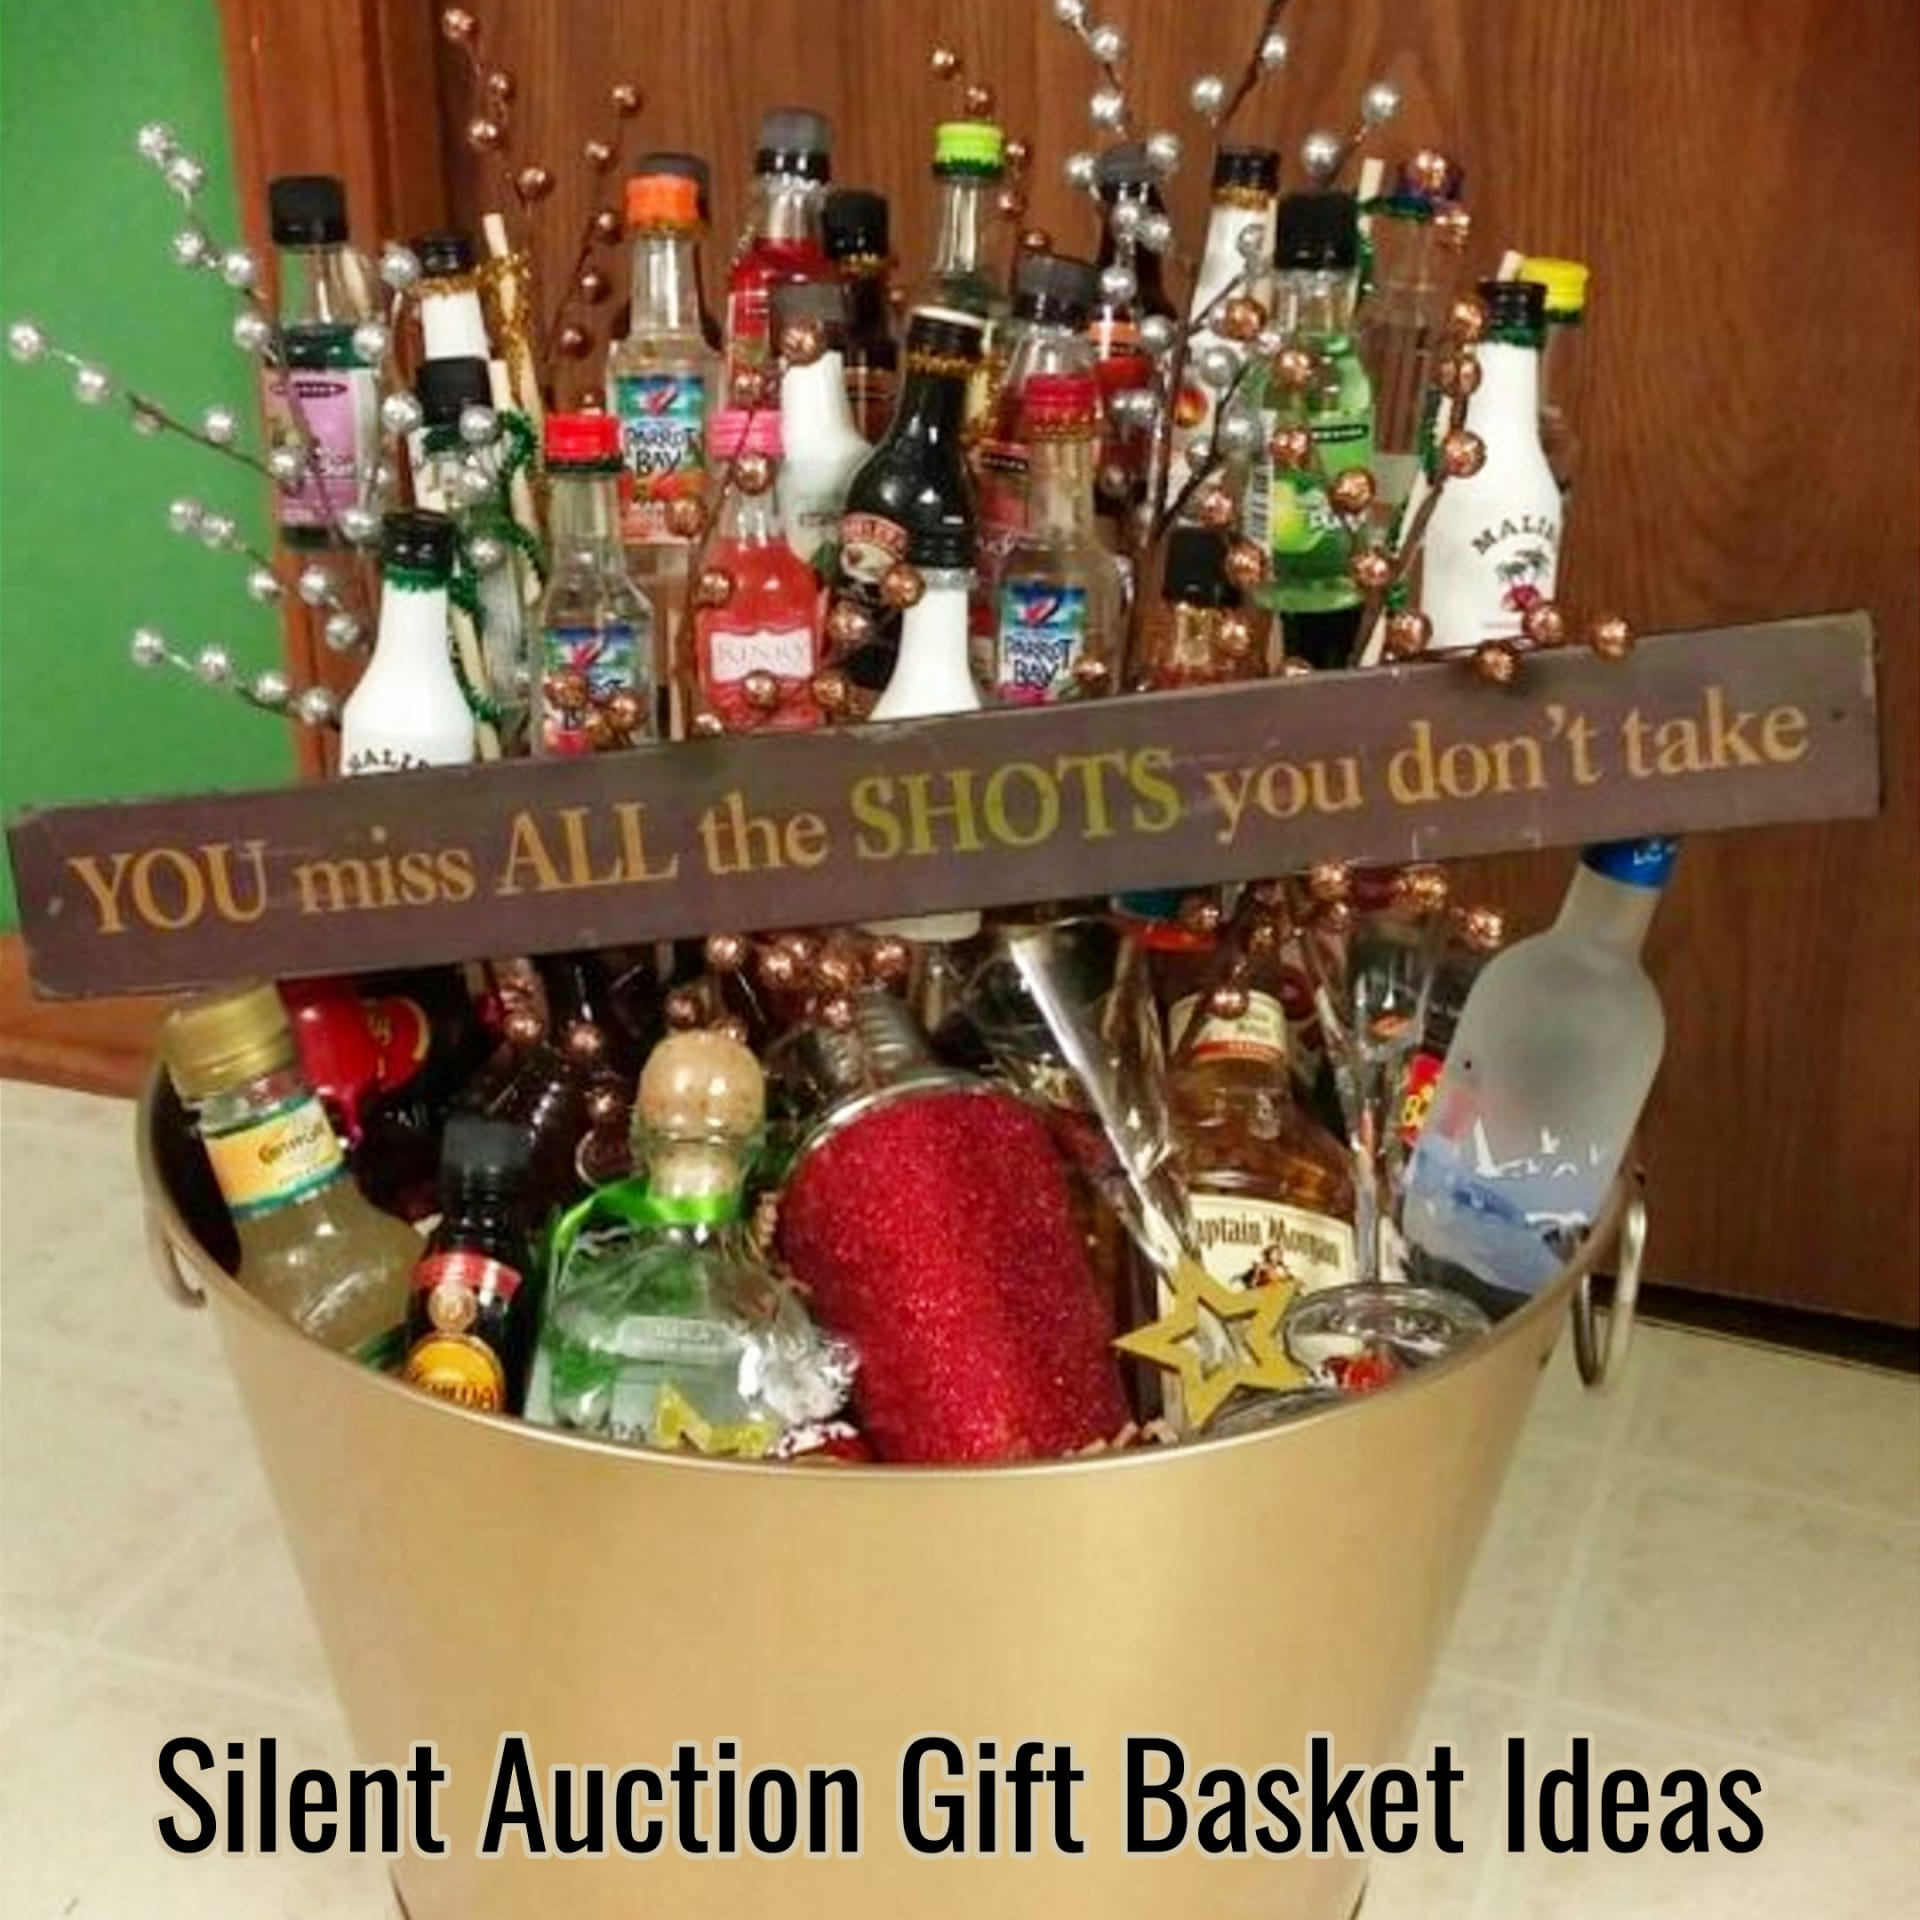 Silent auction gift basket ideas and raffle basket ideas for fundraisers and schools fundraising evens.  Unique and creative silent auction gift basket ideas